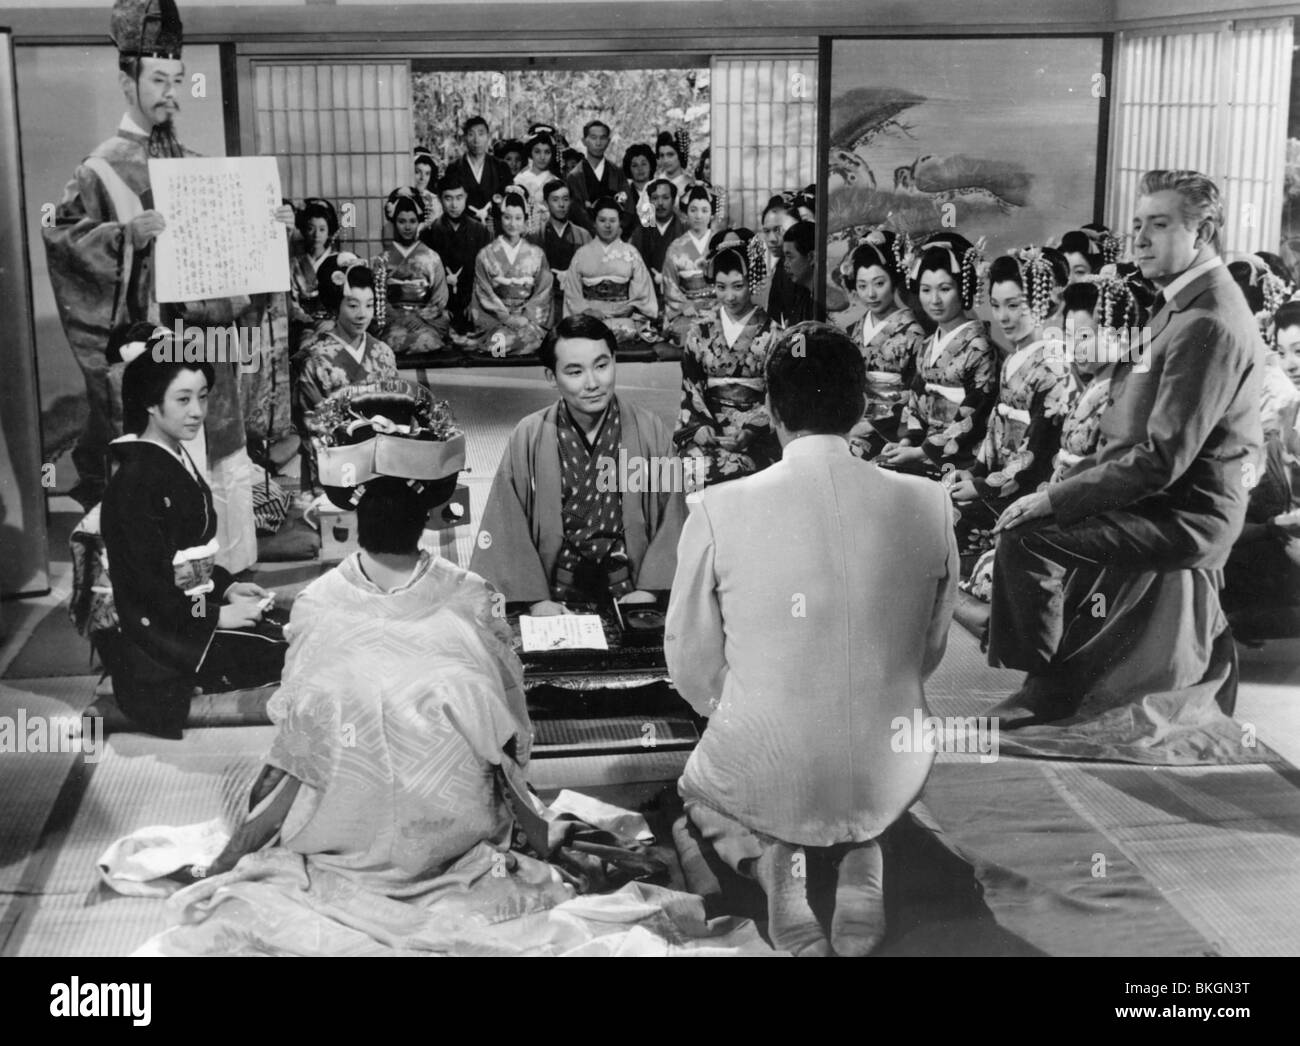 MADAME BUTTERFLY -1956 - Stock Image